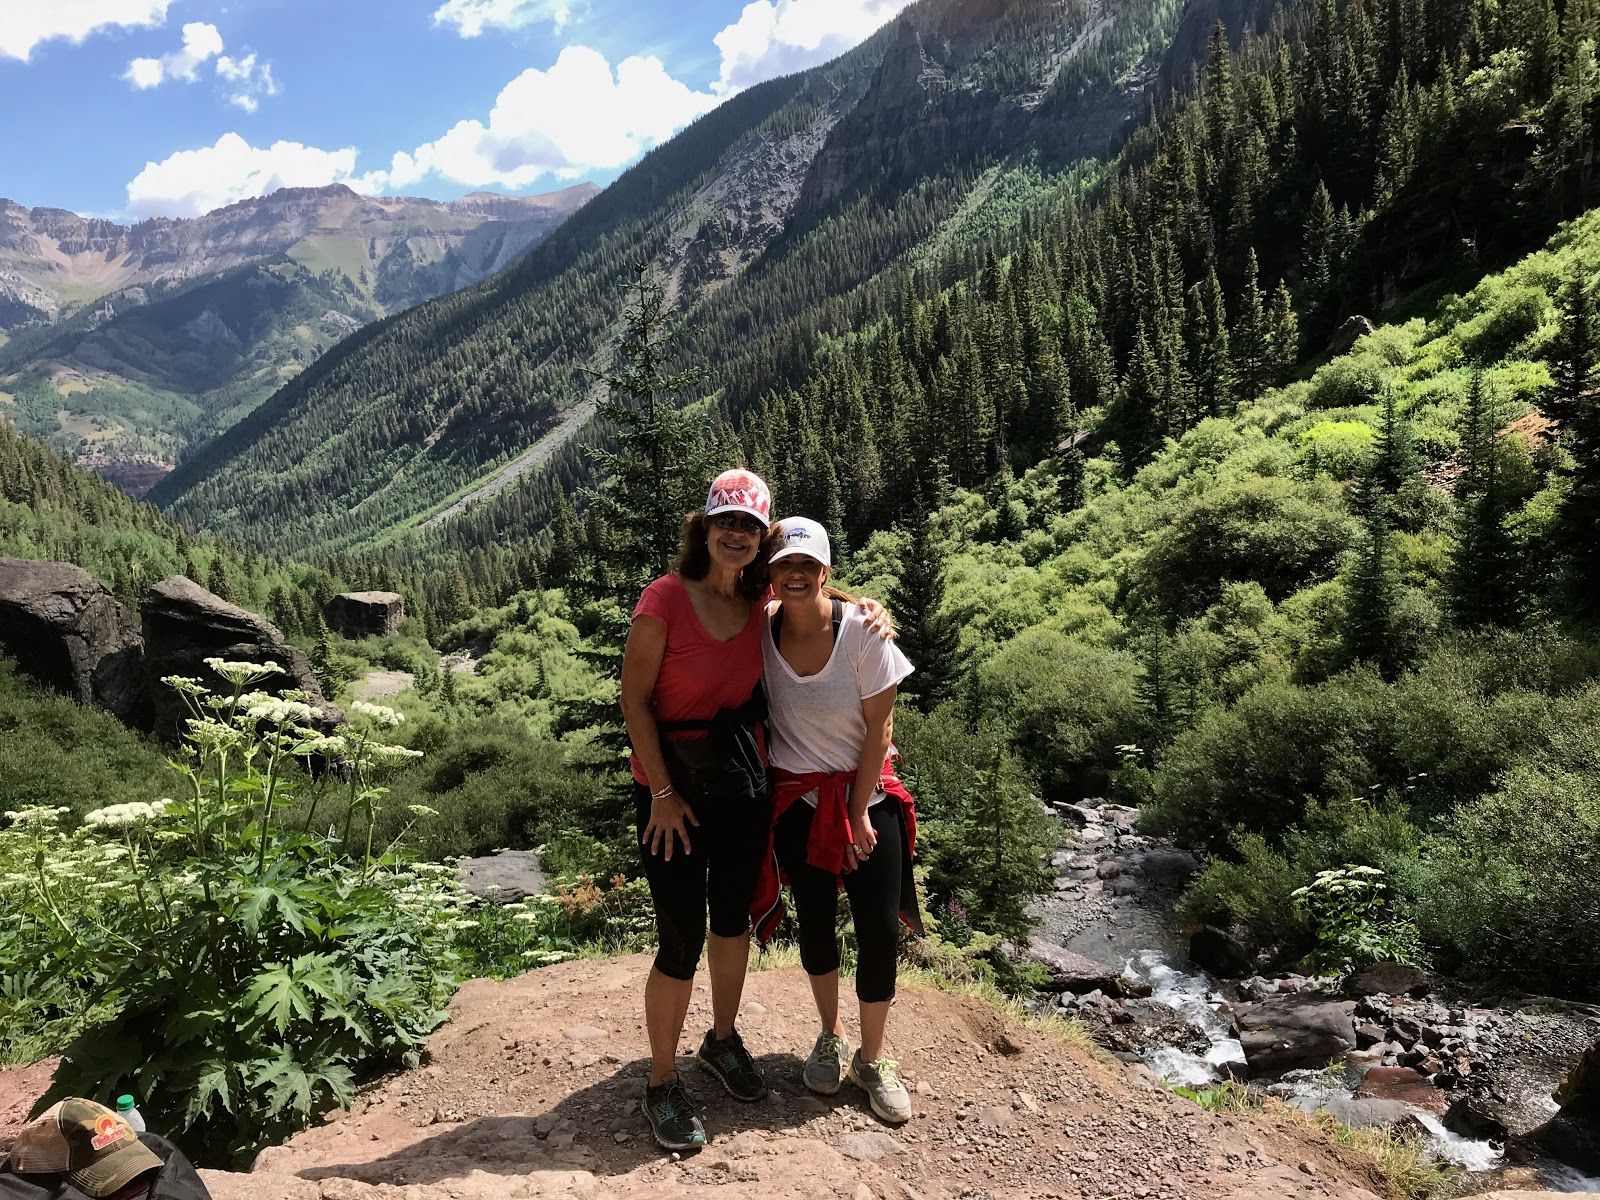 Two people pose for a photo with mountains in the background.